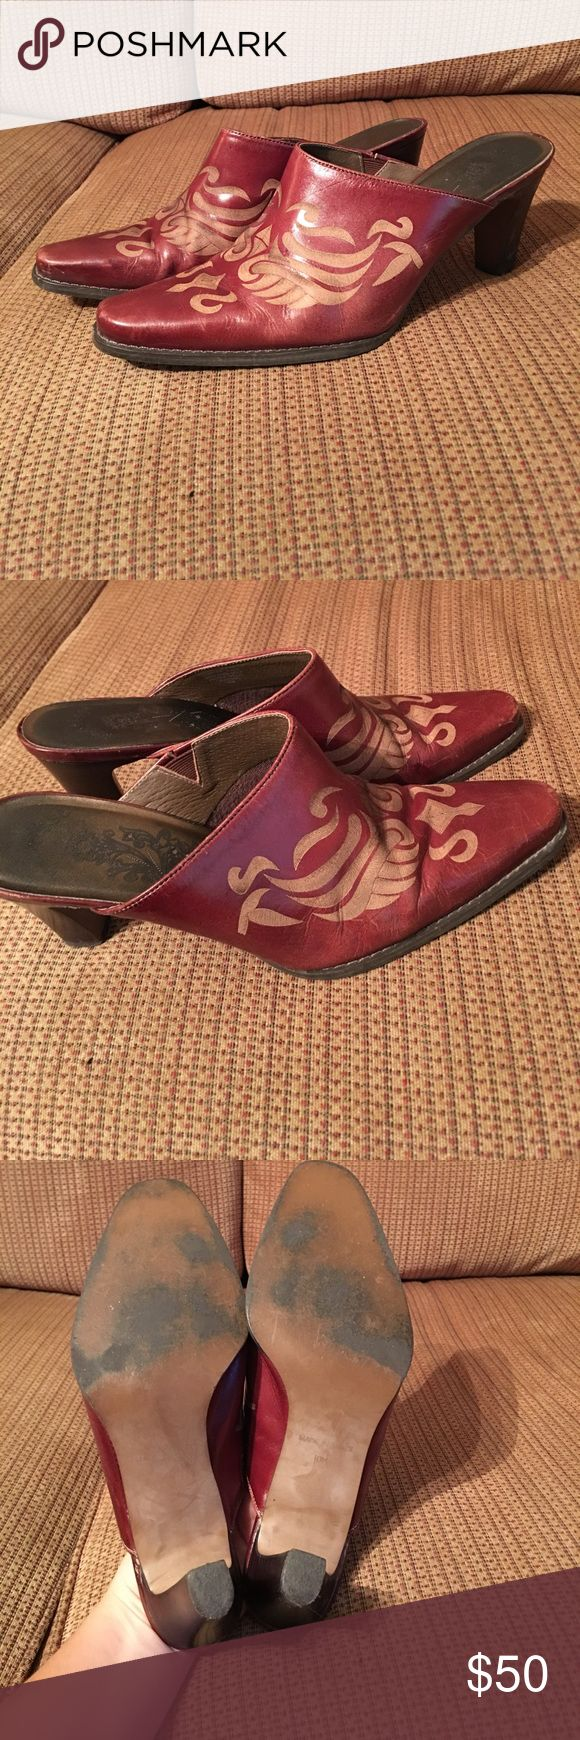 Matisse Mules Women's leather Matisse mules. Worn a handful of times. Extremely comfortable. Pictures makes them look red but the leather if more brown. Matisse Shoes Mules & Clogs